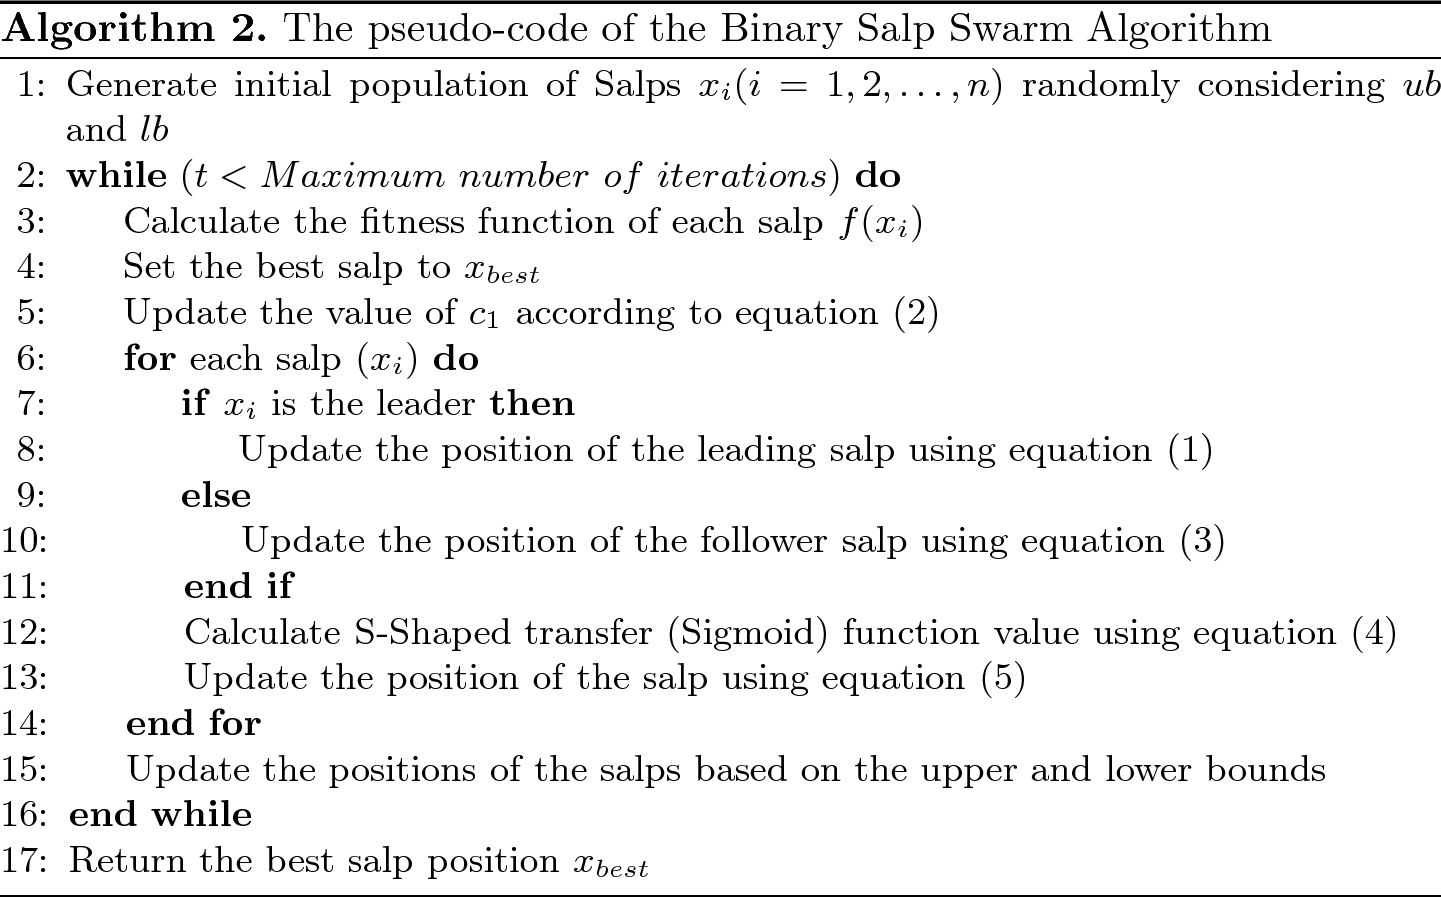 A Chaotic Binary Salp Swarm Algorithm for Solving the Graph